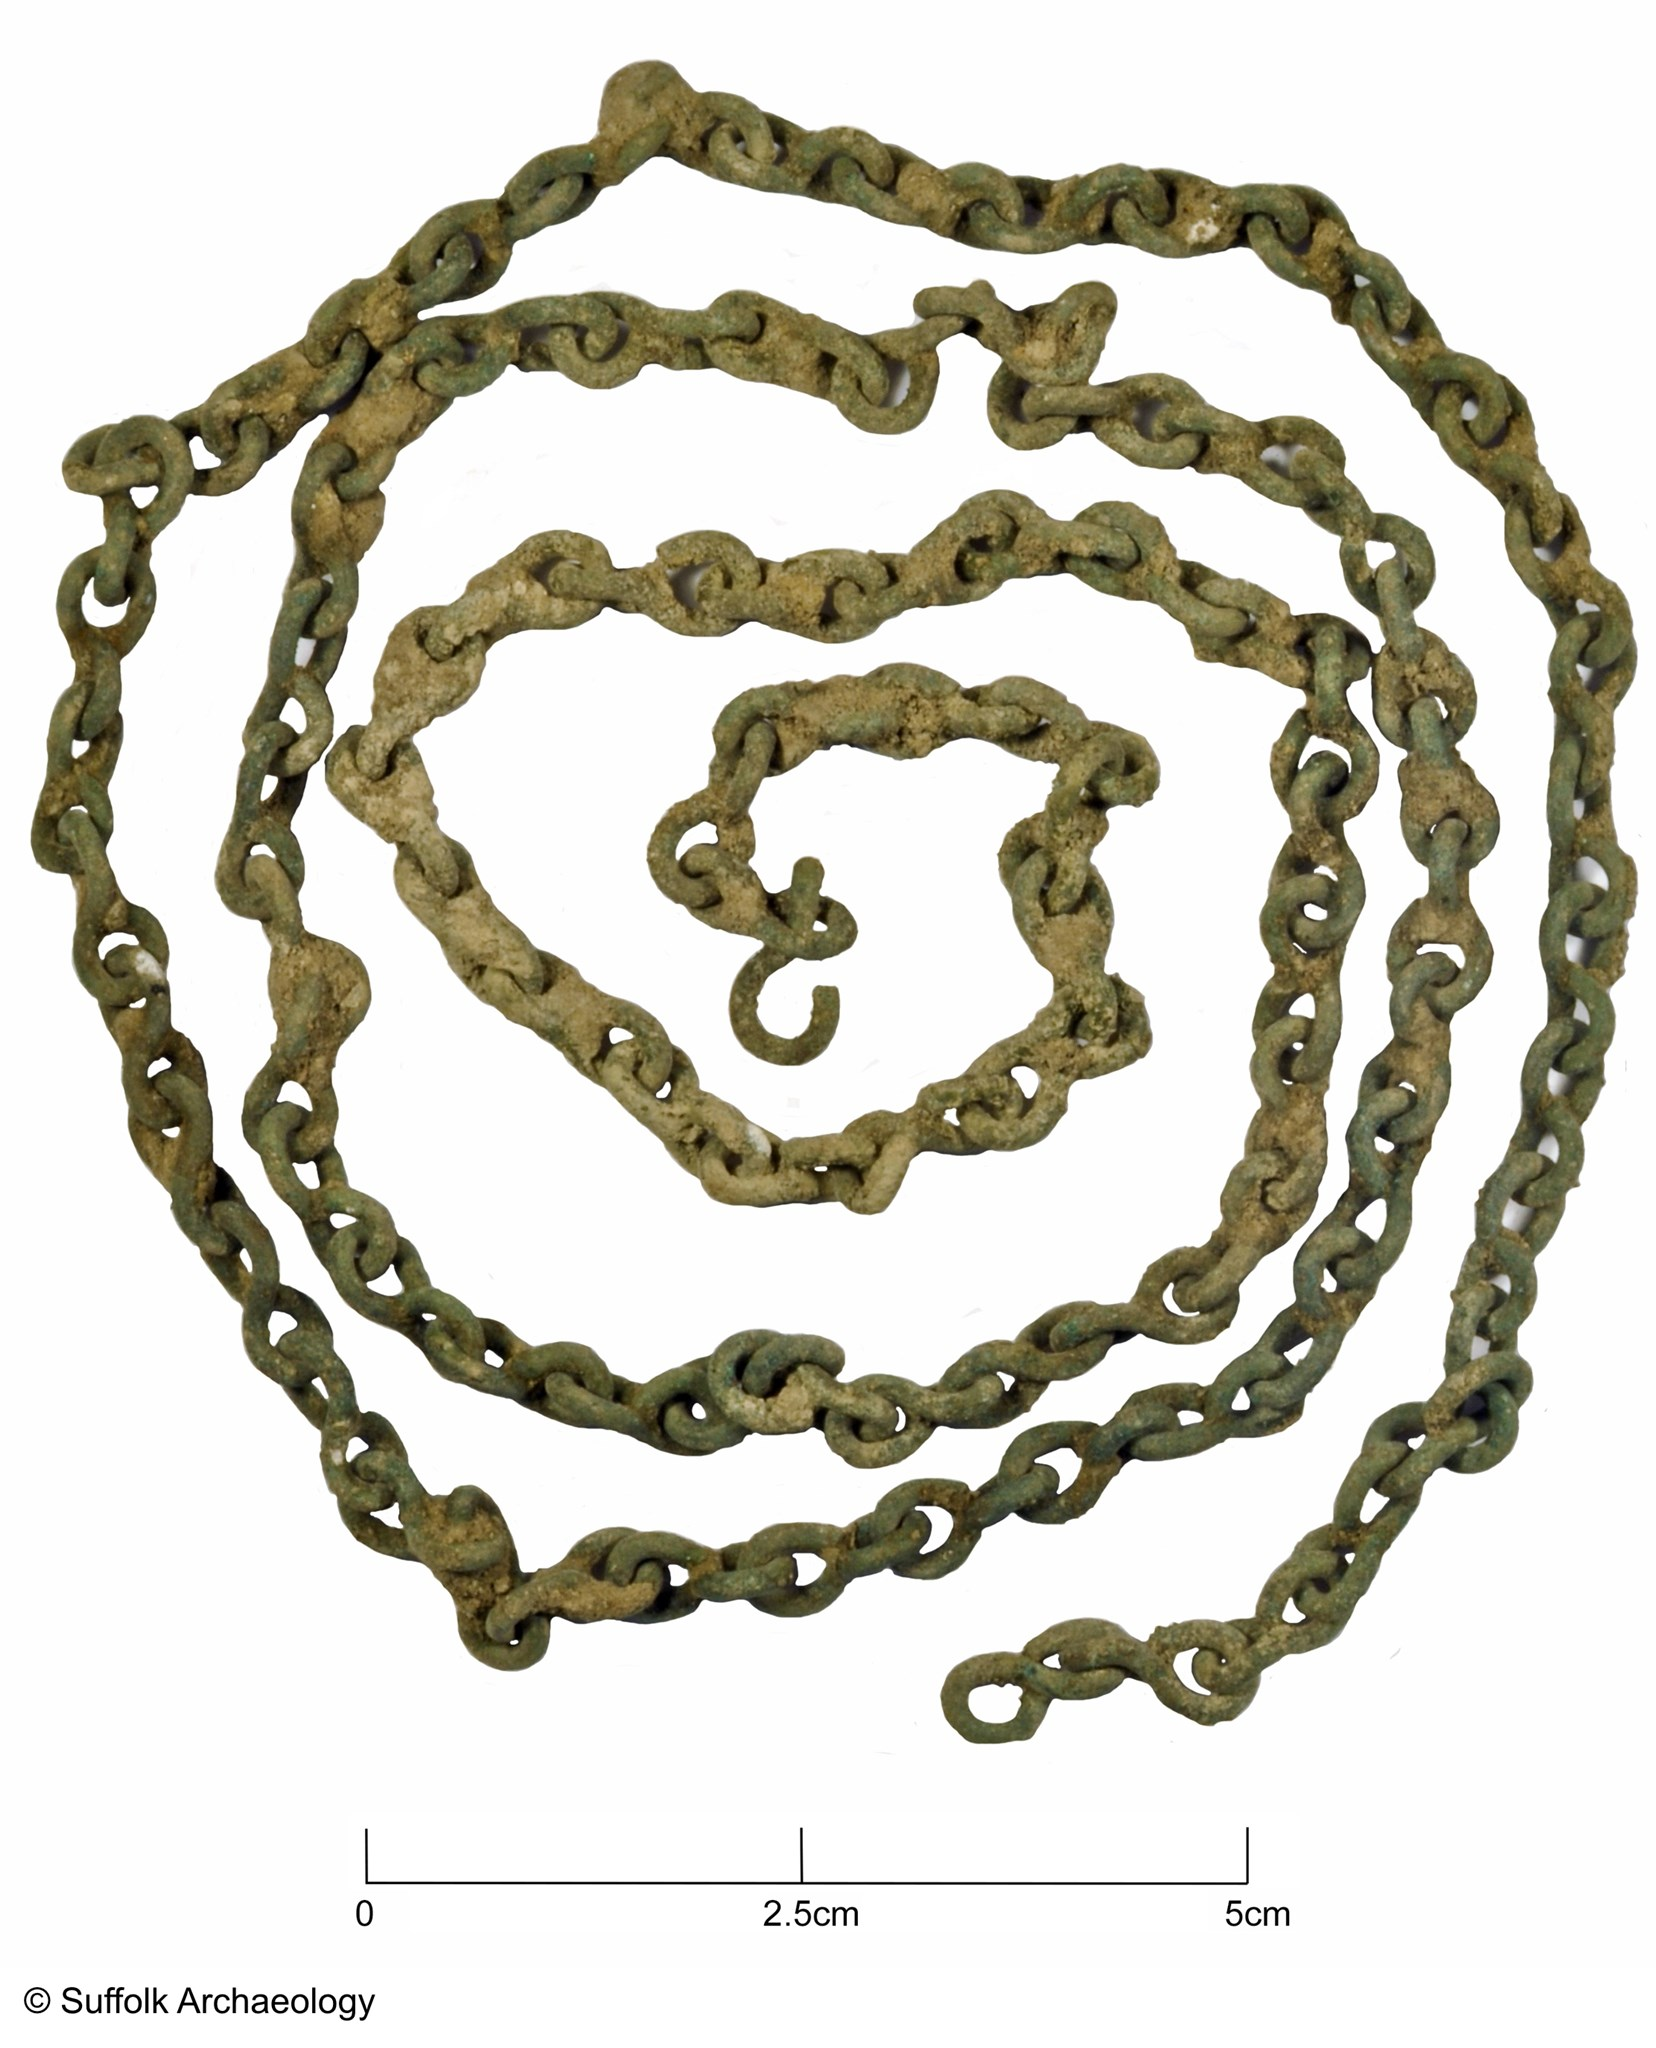 Late medieval/early post-medieval copper alloy chain.